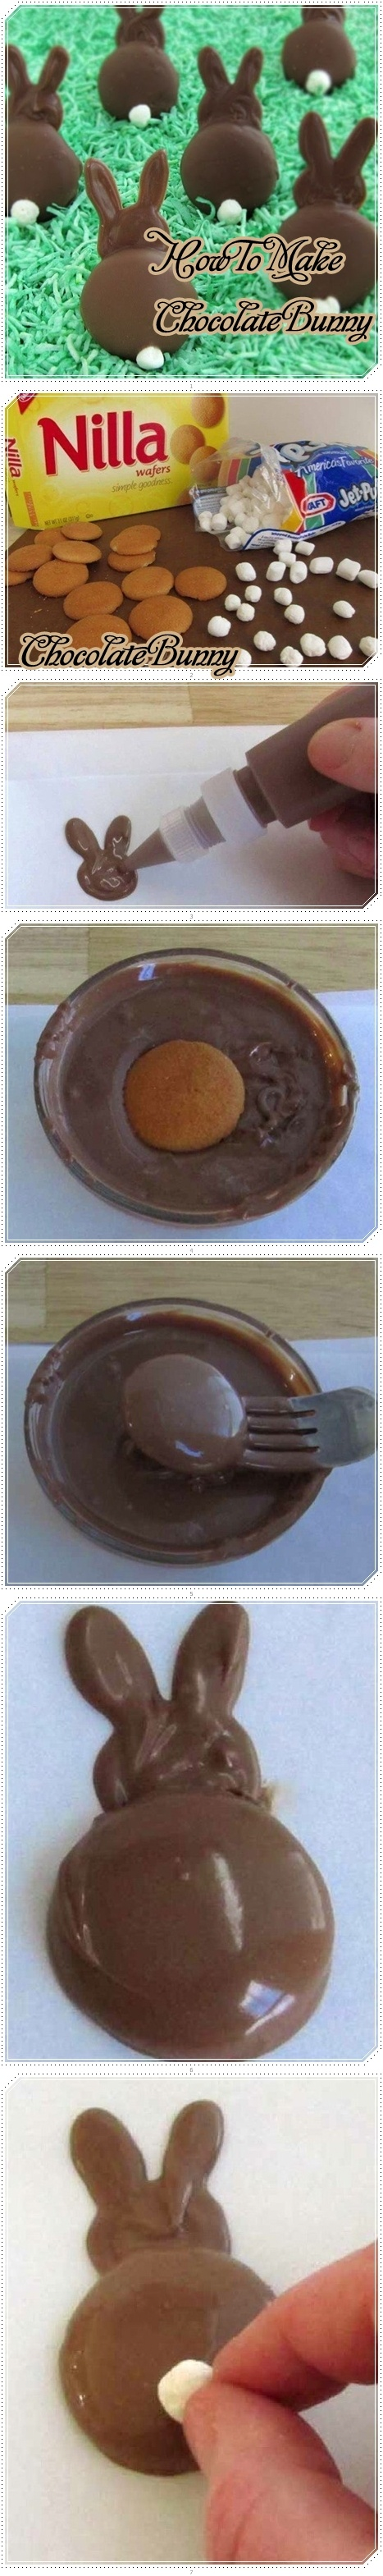 How to Make ---> Chocolate Bunny I just want to not eat them to cute :) ♥